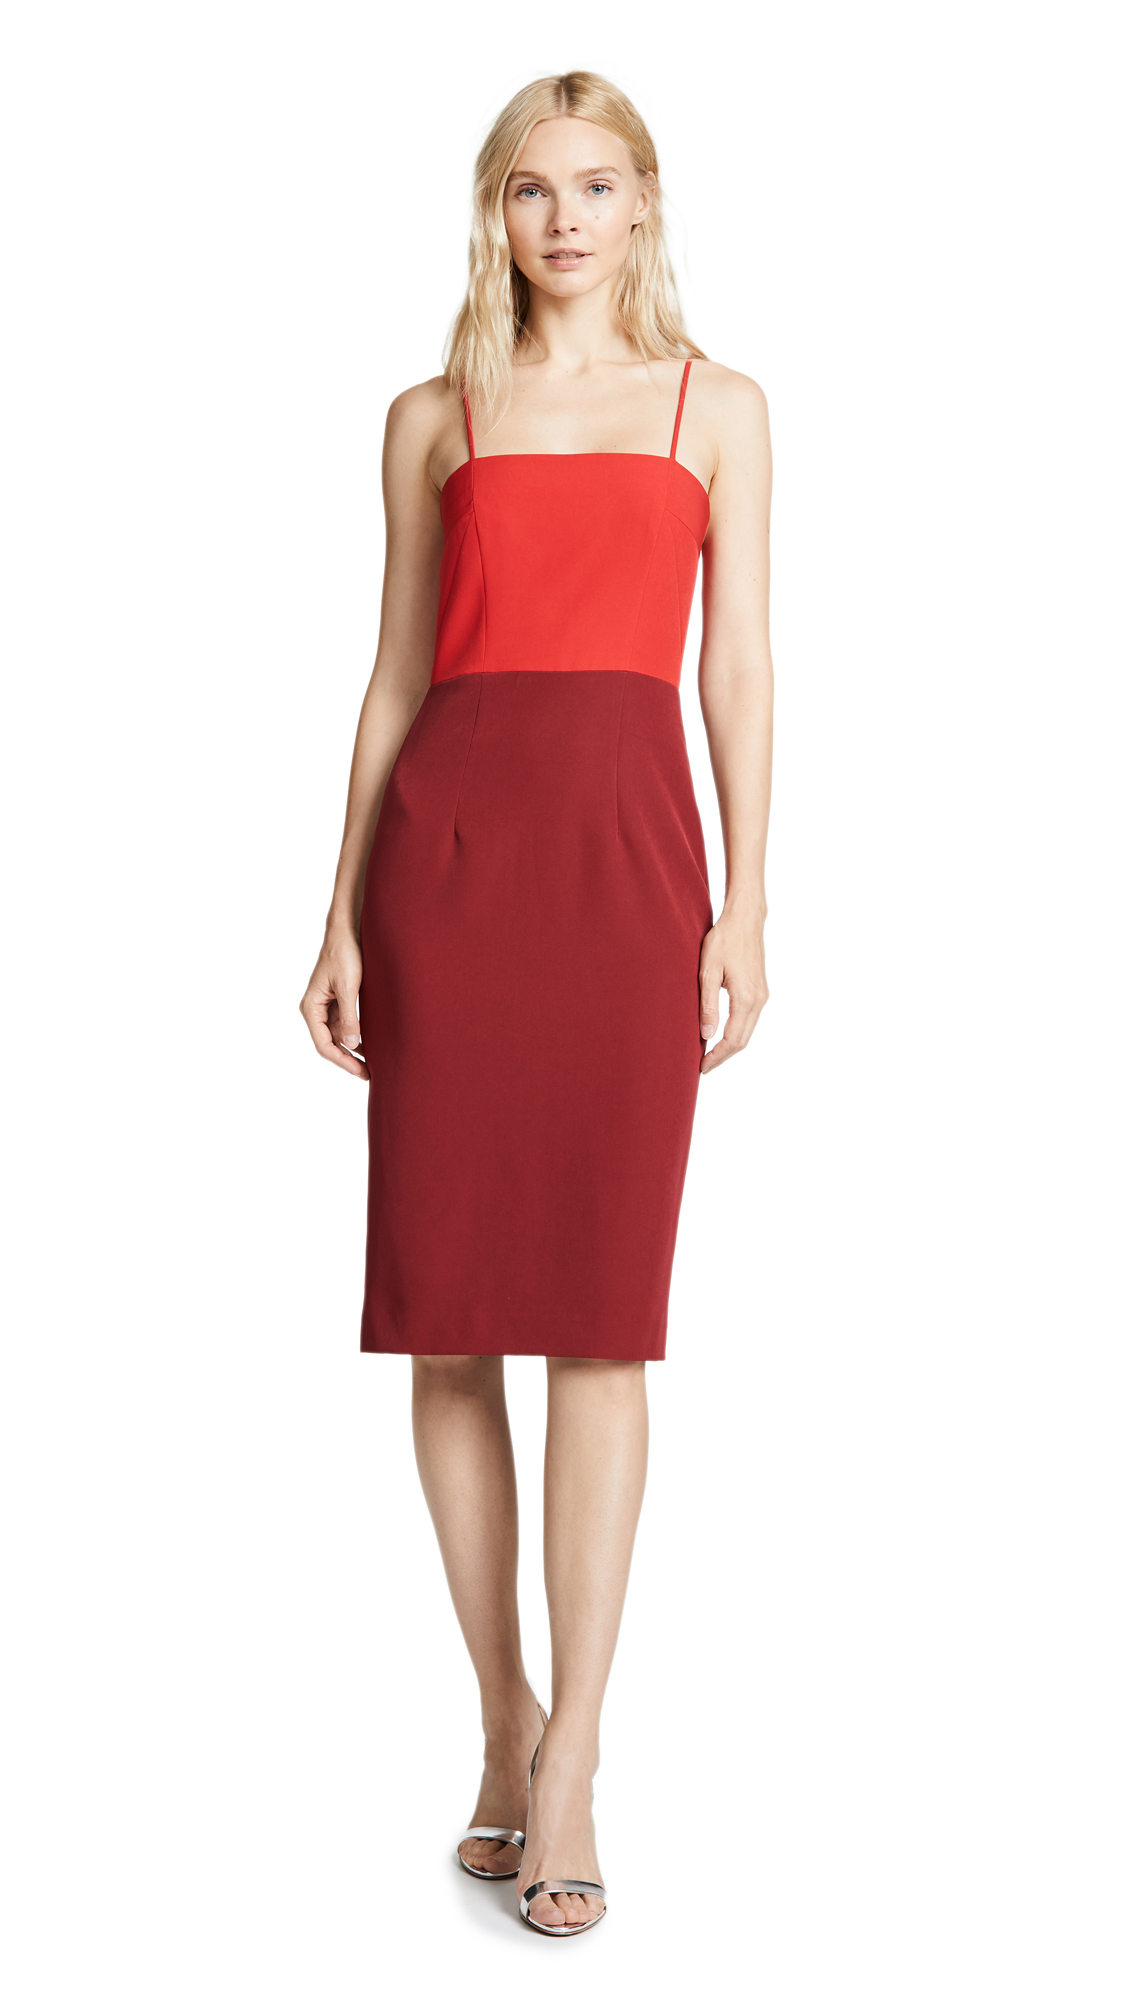 MILLY Italian Cady Pencil Dress in Red